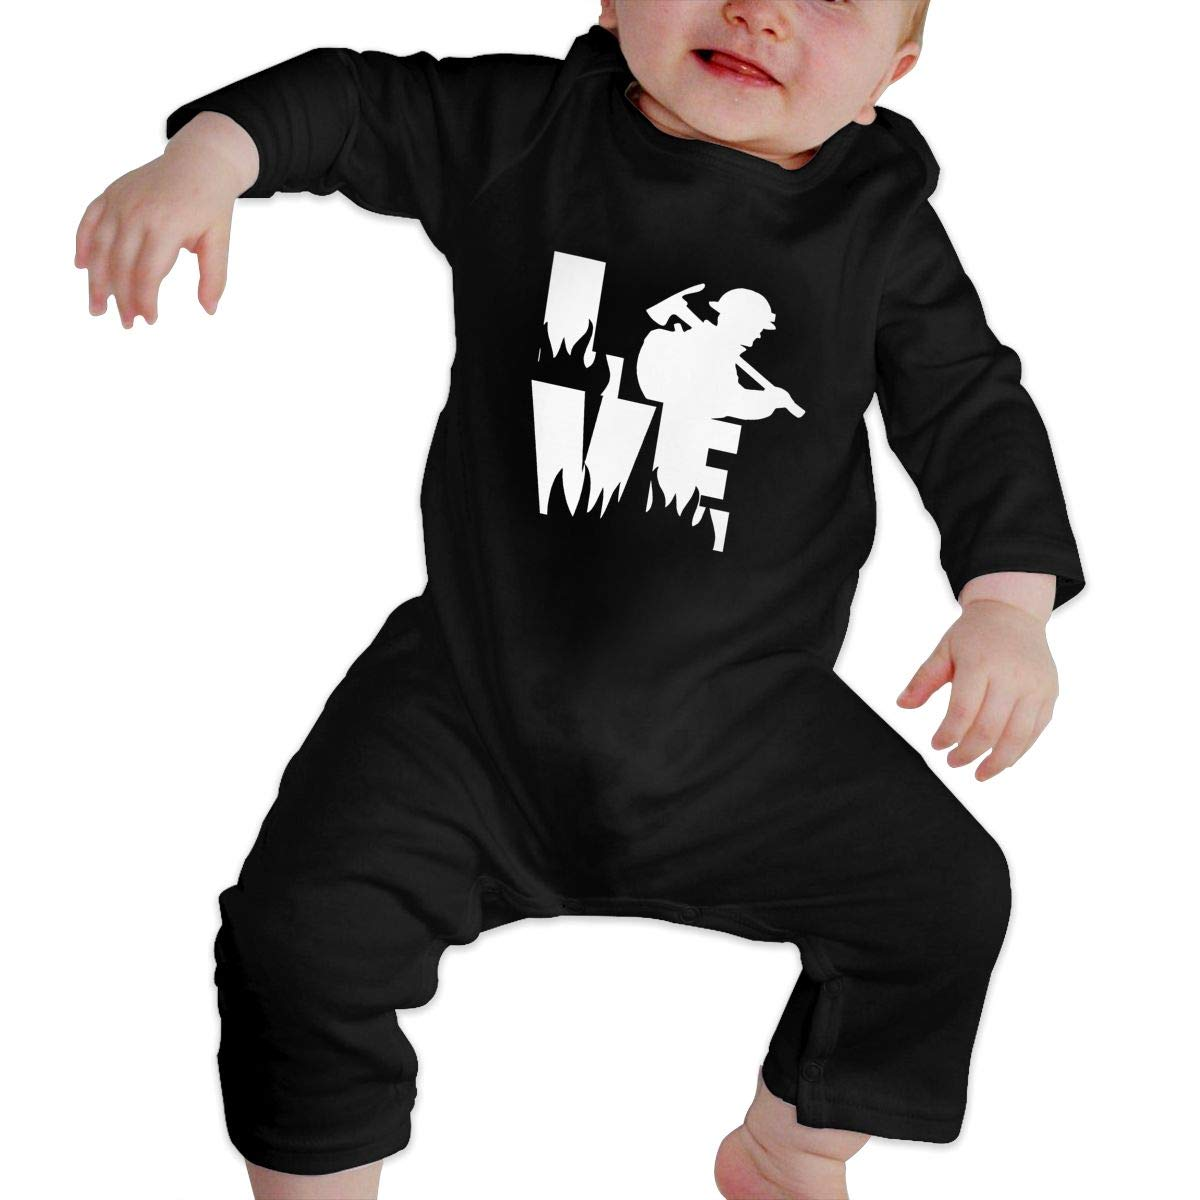 Comfortable Love A Wildland Fire Fighter Cotton Romper Outfit Infant Baby Girls Boys Long Sleeve Bodysuit